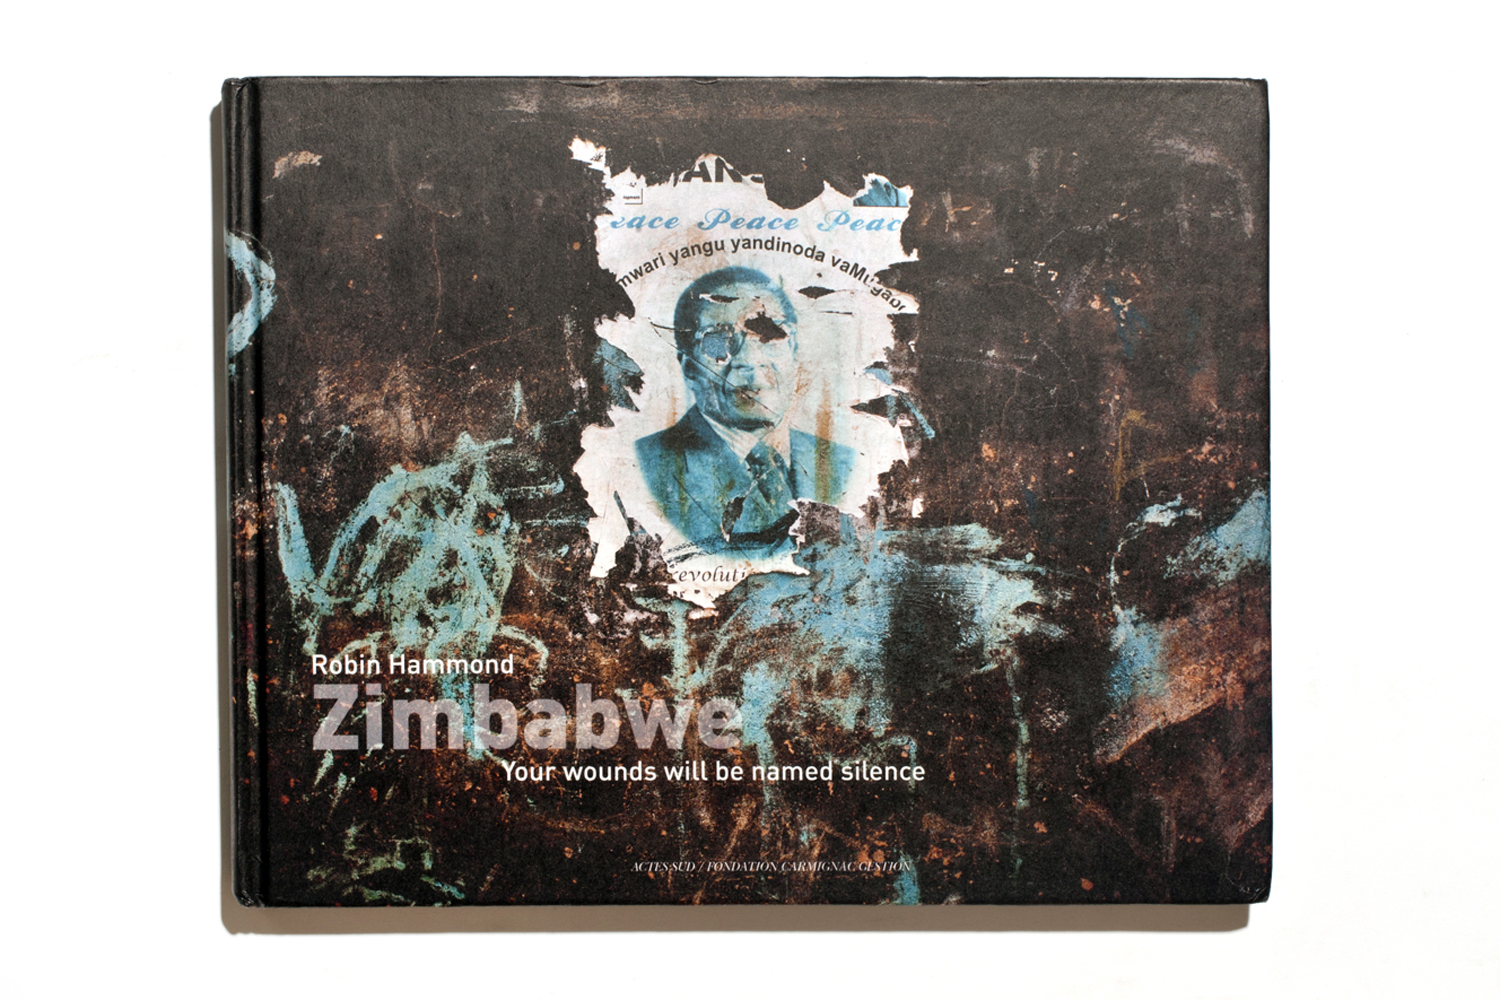 Zimbabwe: Your Wounds Will Be Named Silence by Robin Hammond, published by Actes Sud/Foundation Carmignac Gestion, selected by Vaughn Wallace, producer of LightBox.